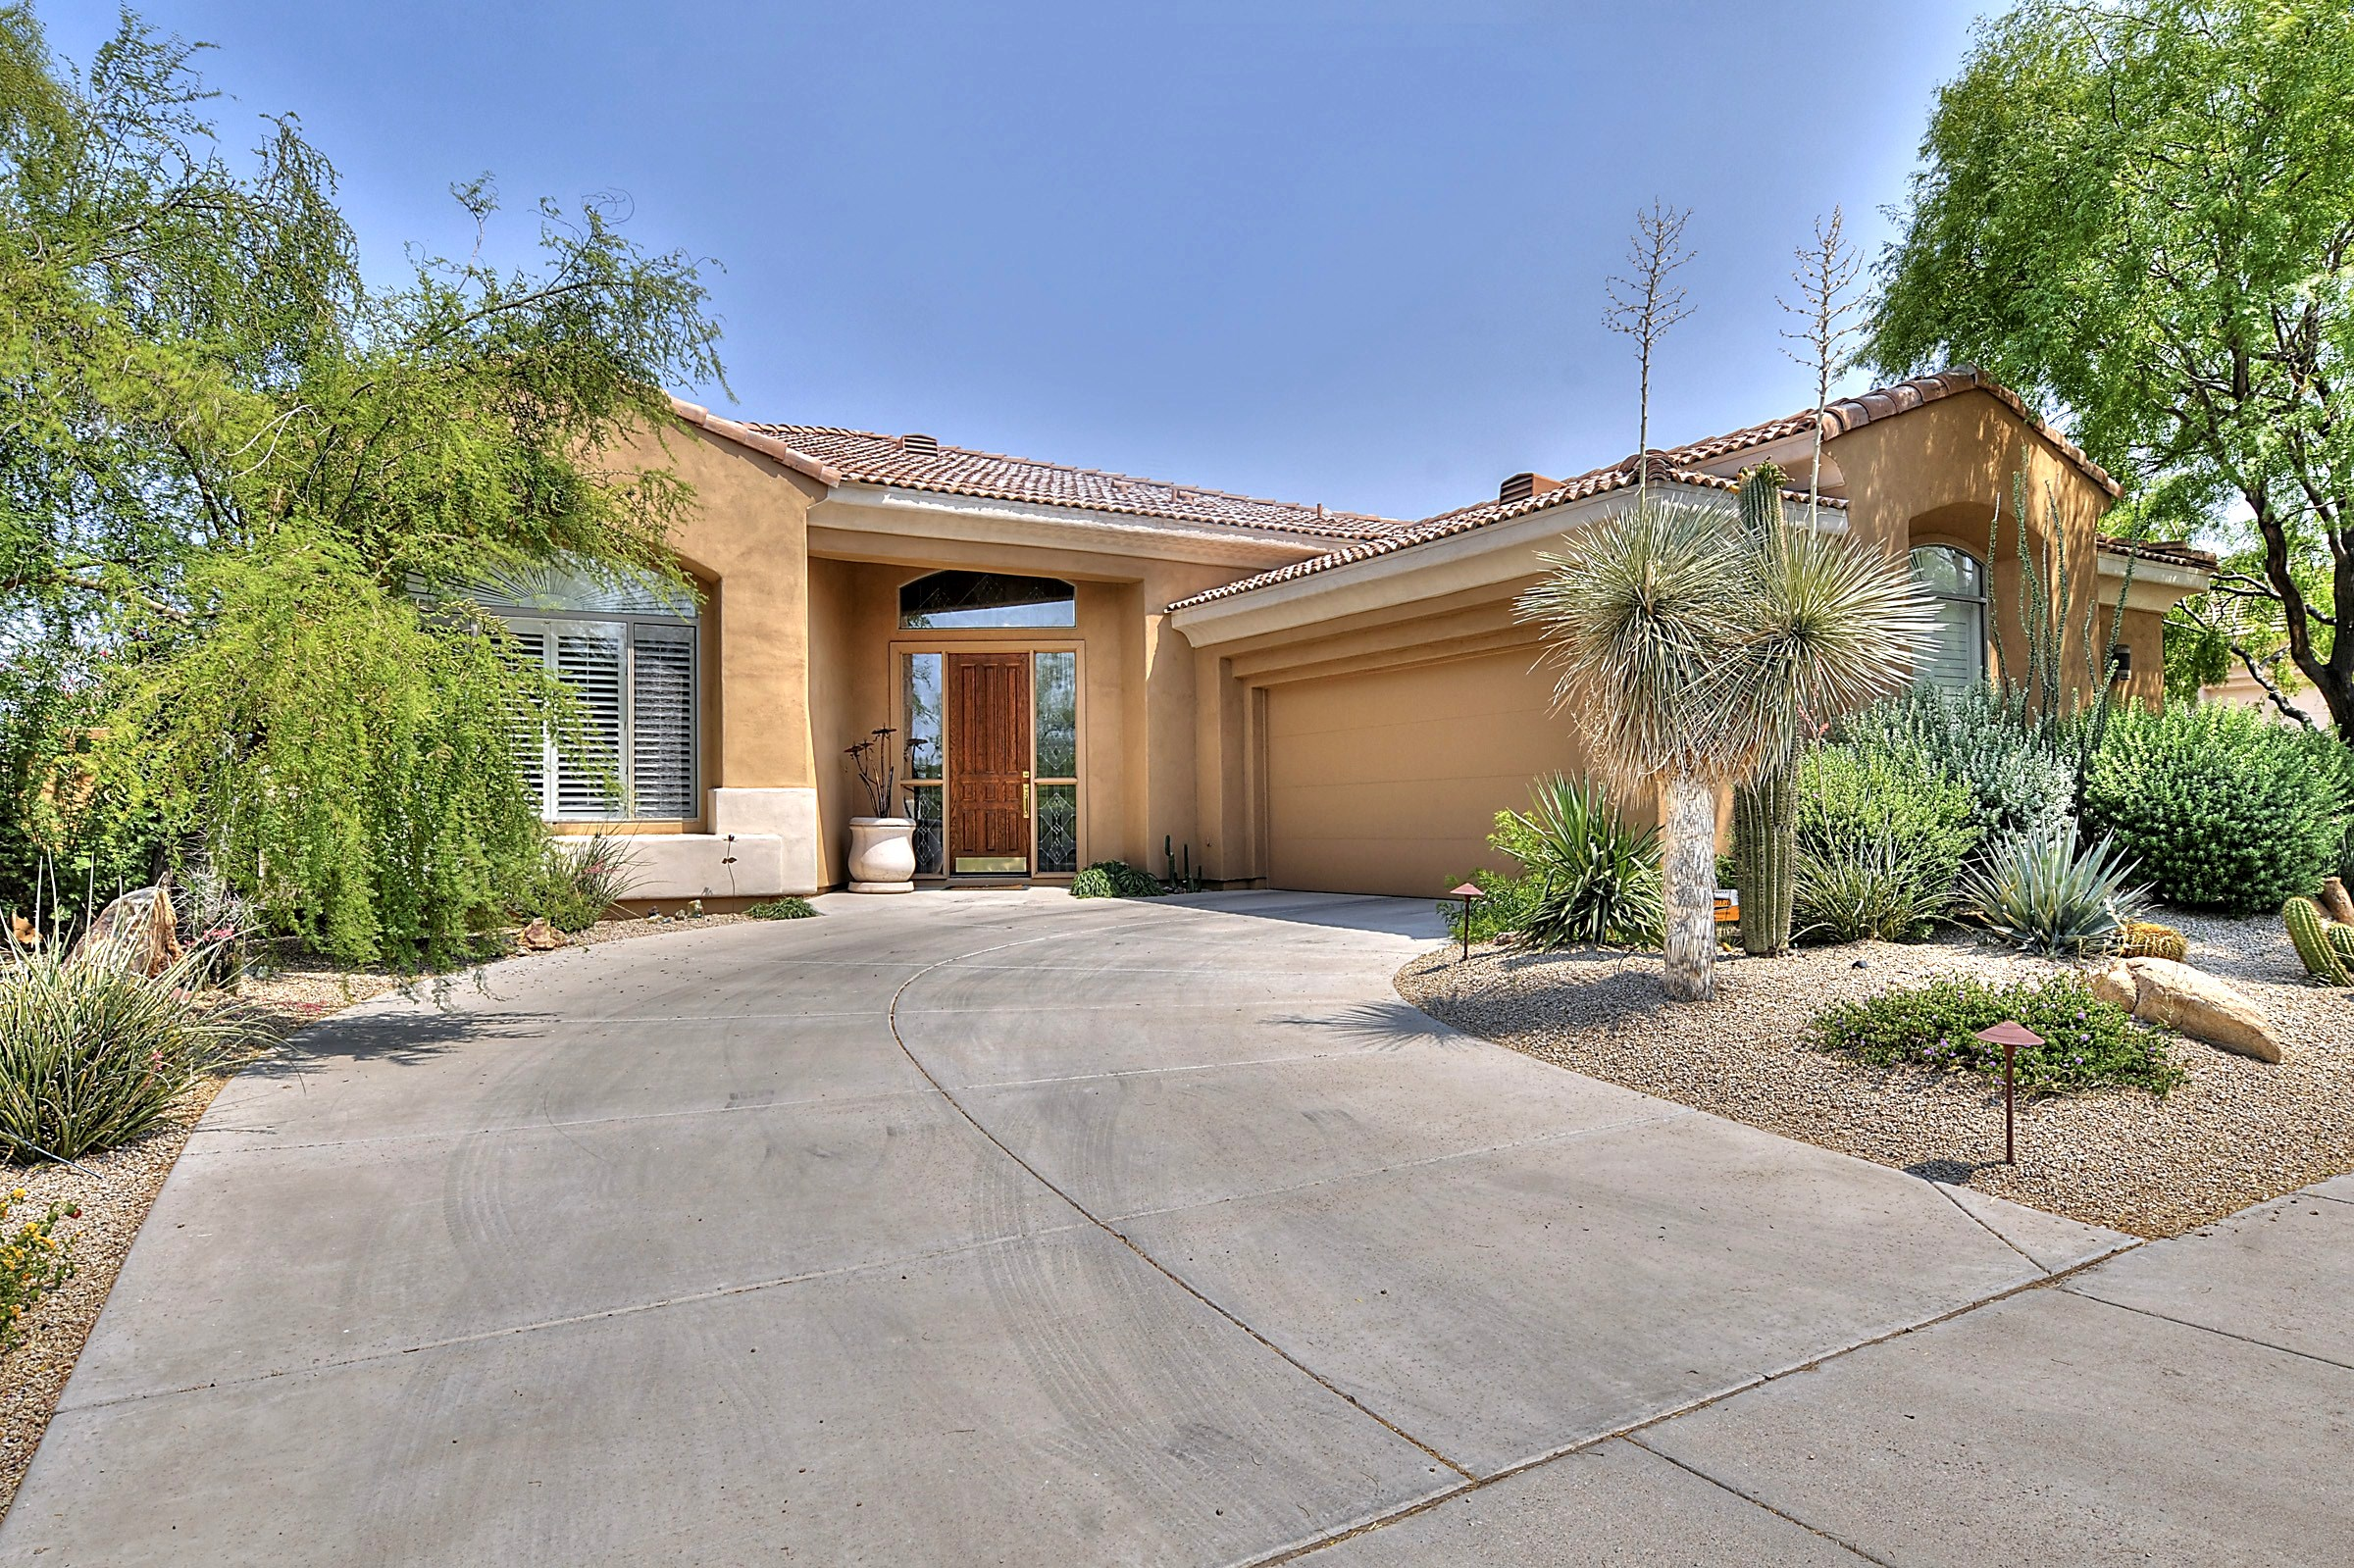 Homes In Sunridge Canyon The Sonoran Life Style